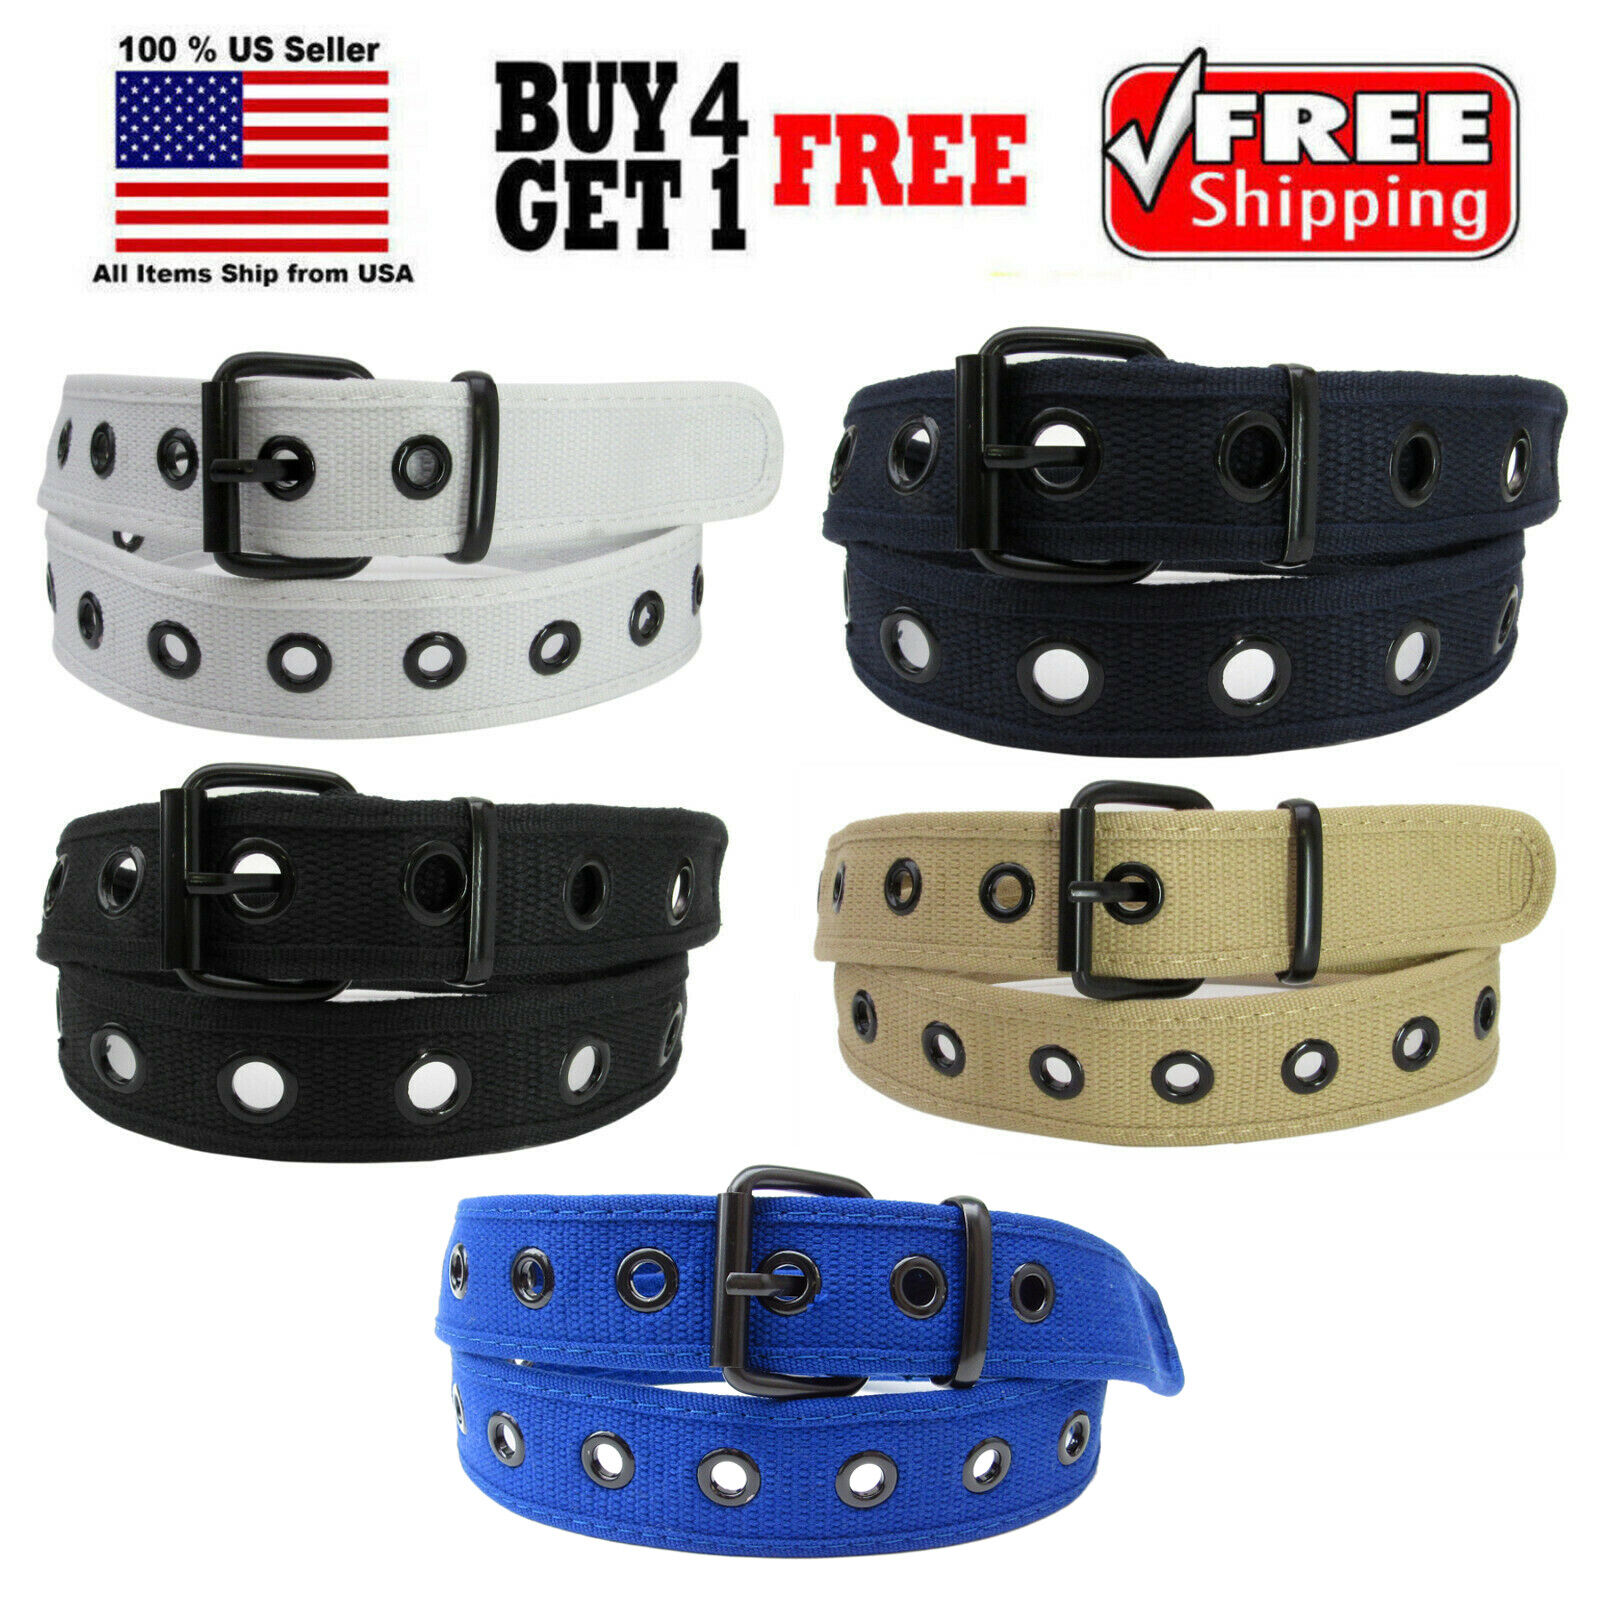 Men Women Unisex 1 Holes Row Grommet Stitched Canvas Fabric Military Web Belt Belts